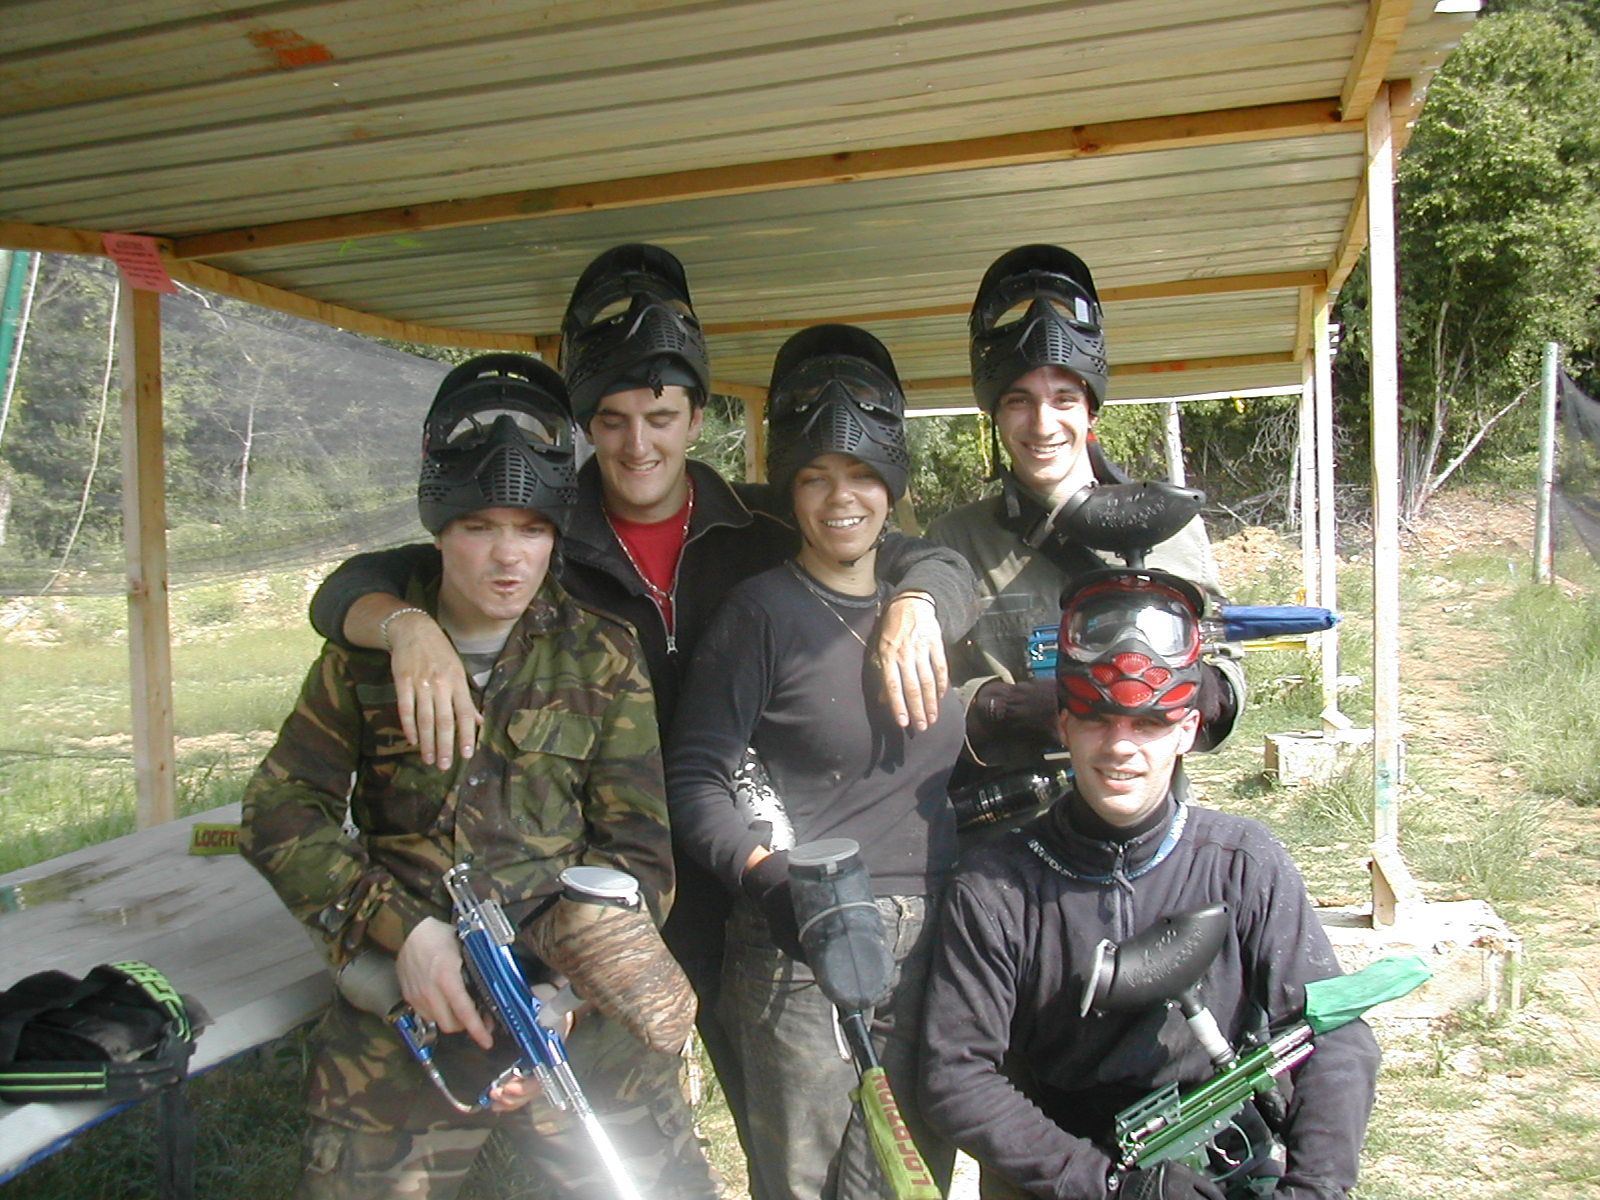 Paintball othis